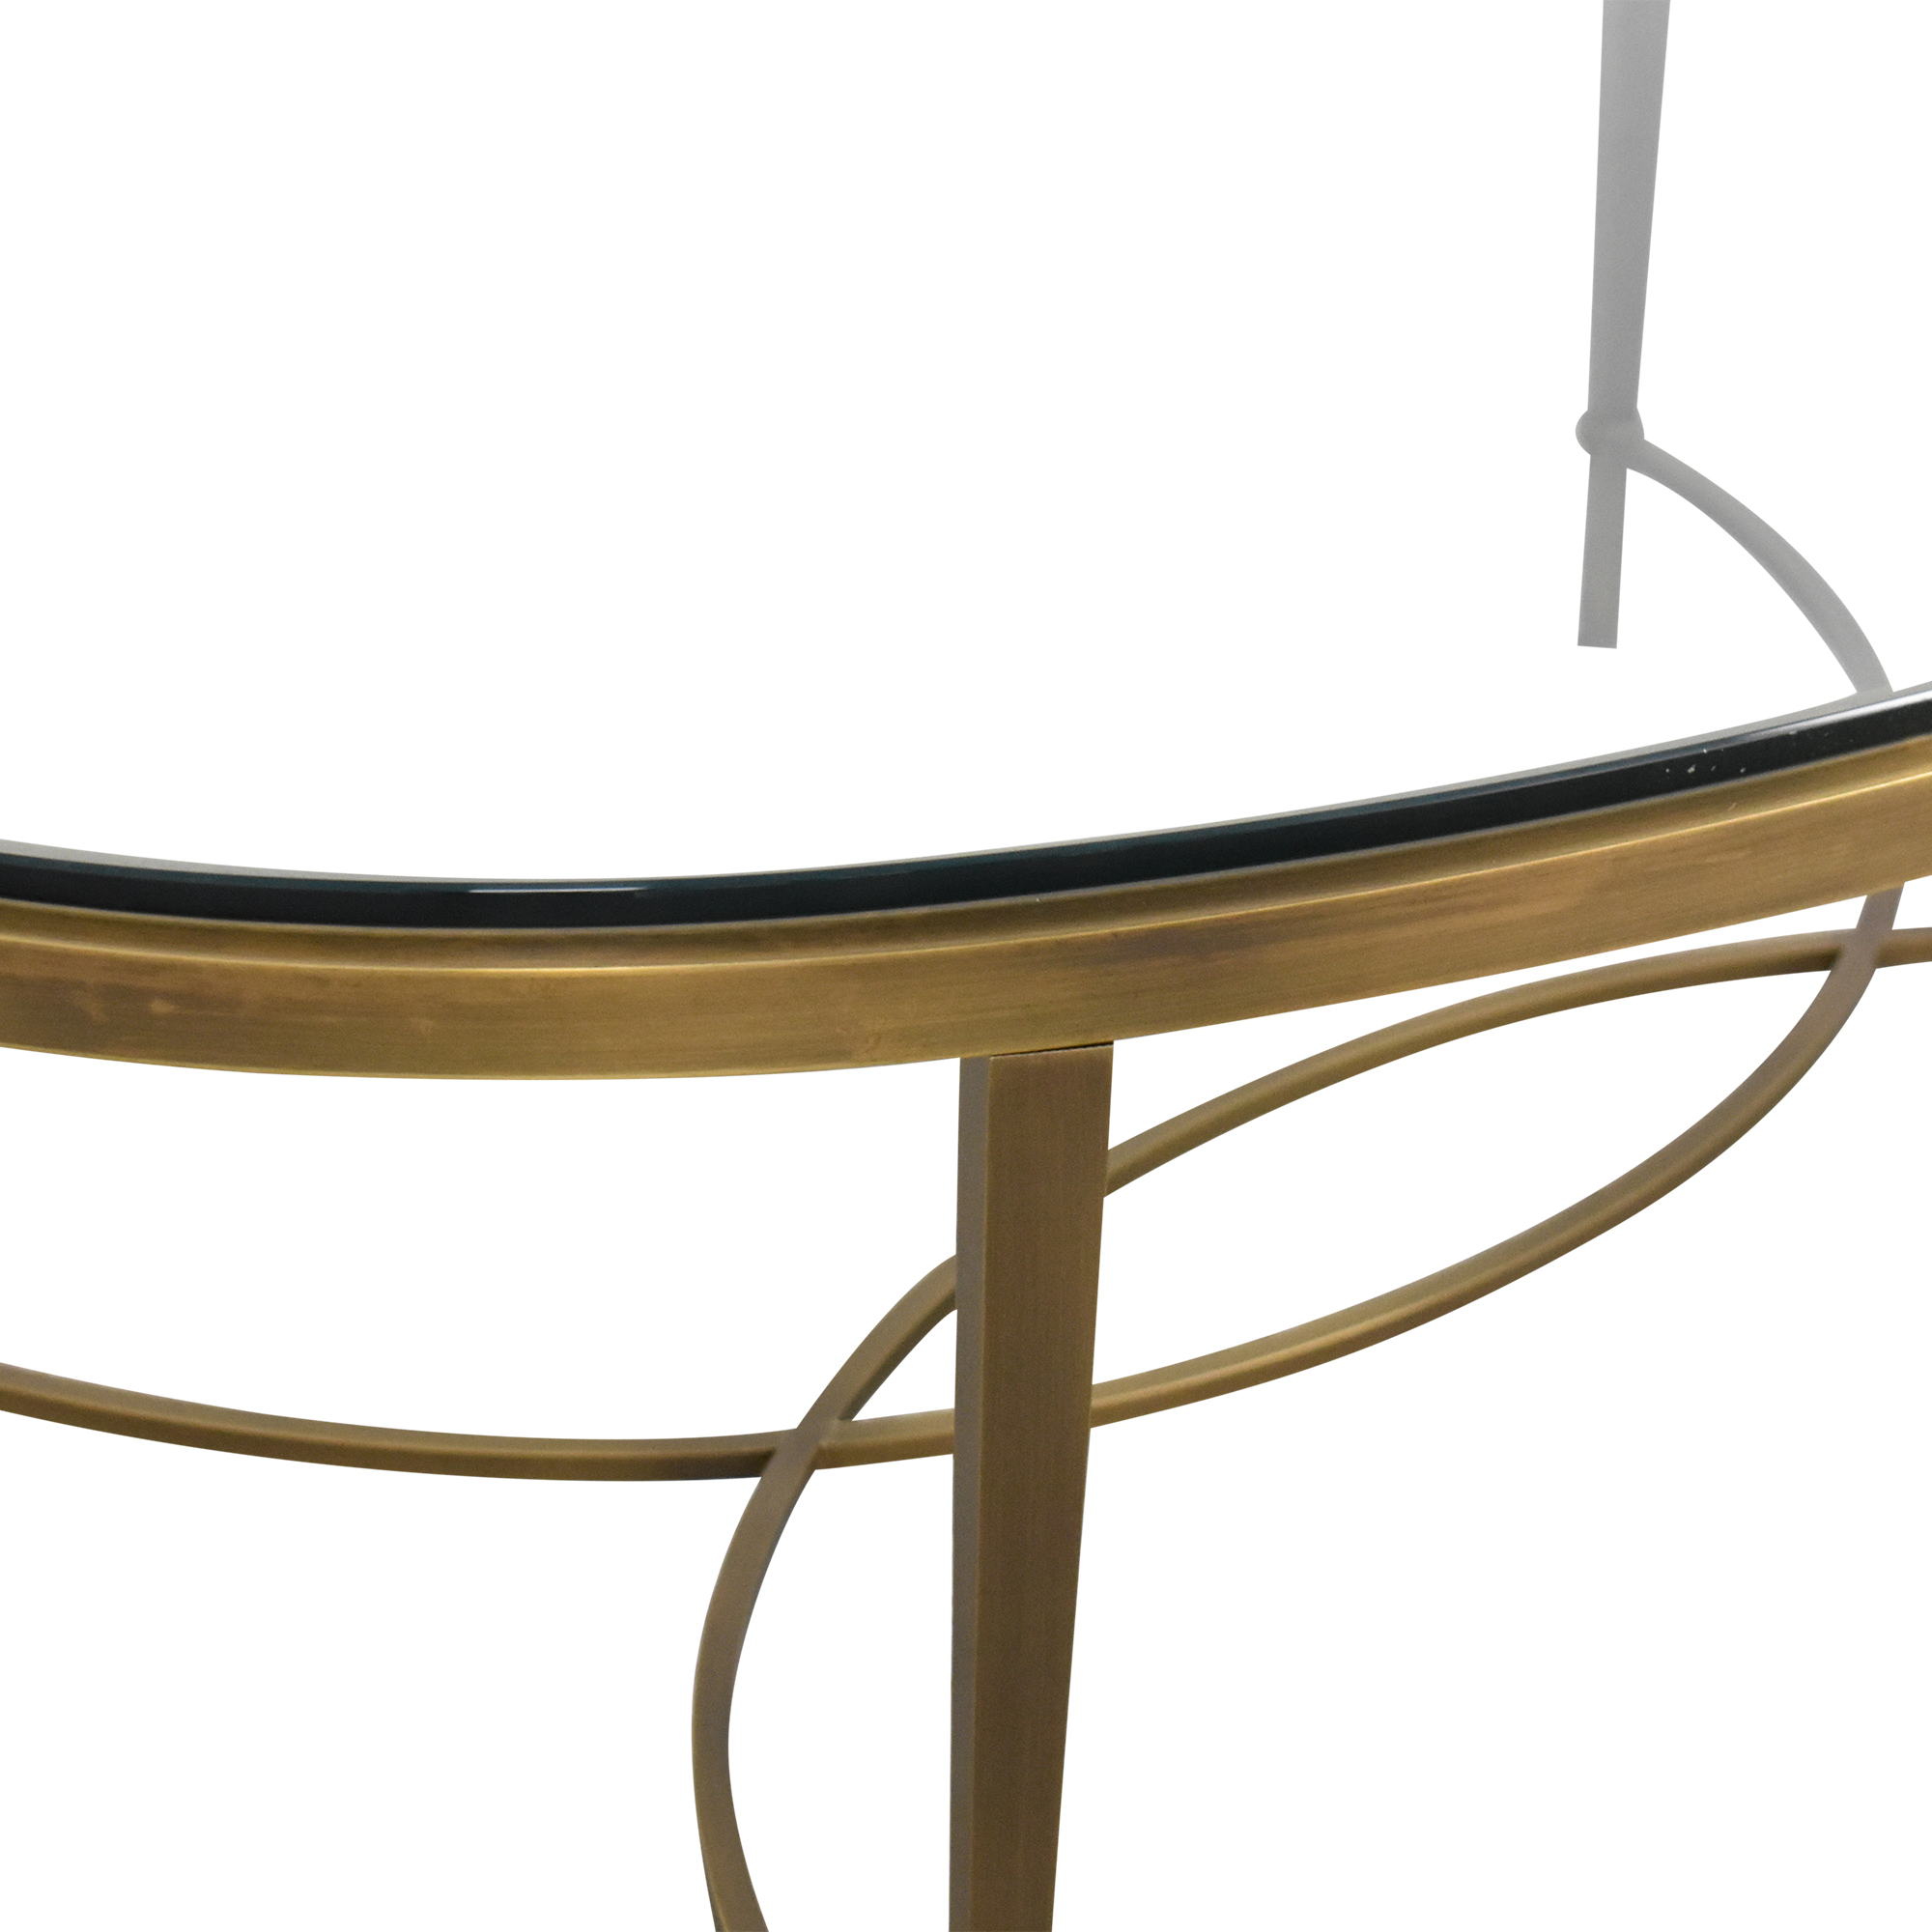 Baker Furniture Baker Furniture Oval Coffee Table gold